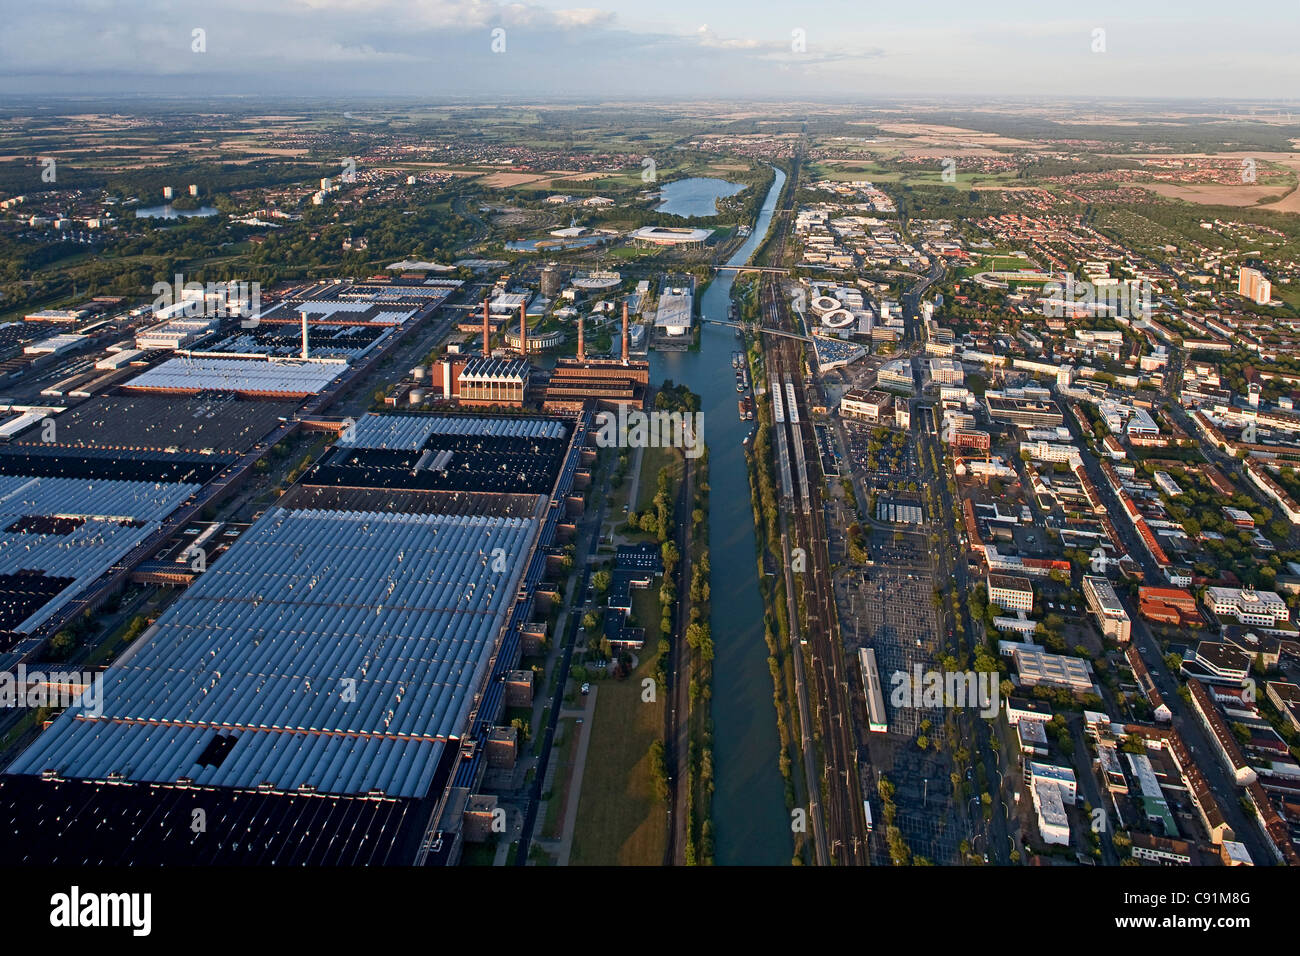 Aerial view of the power plant and factory at VW Autostadt Wolfsburg, Mittelland Canal, Lower Saxony, Germany - Stock Image